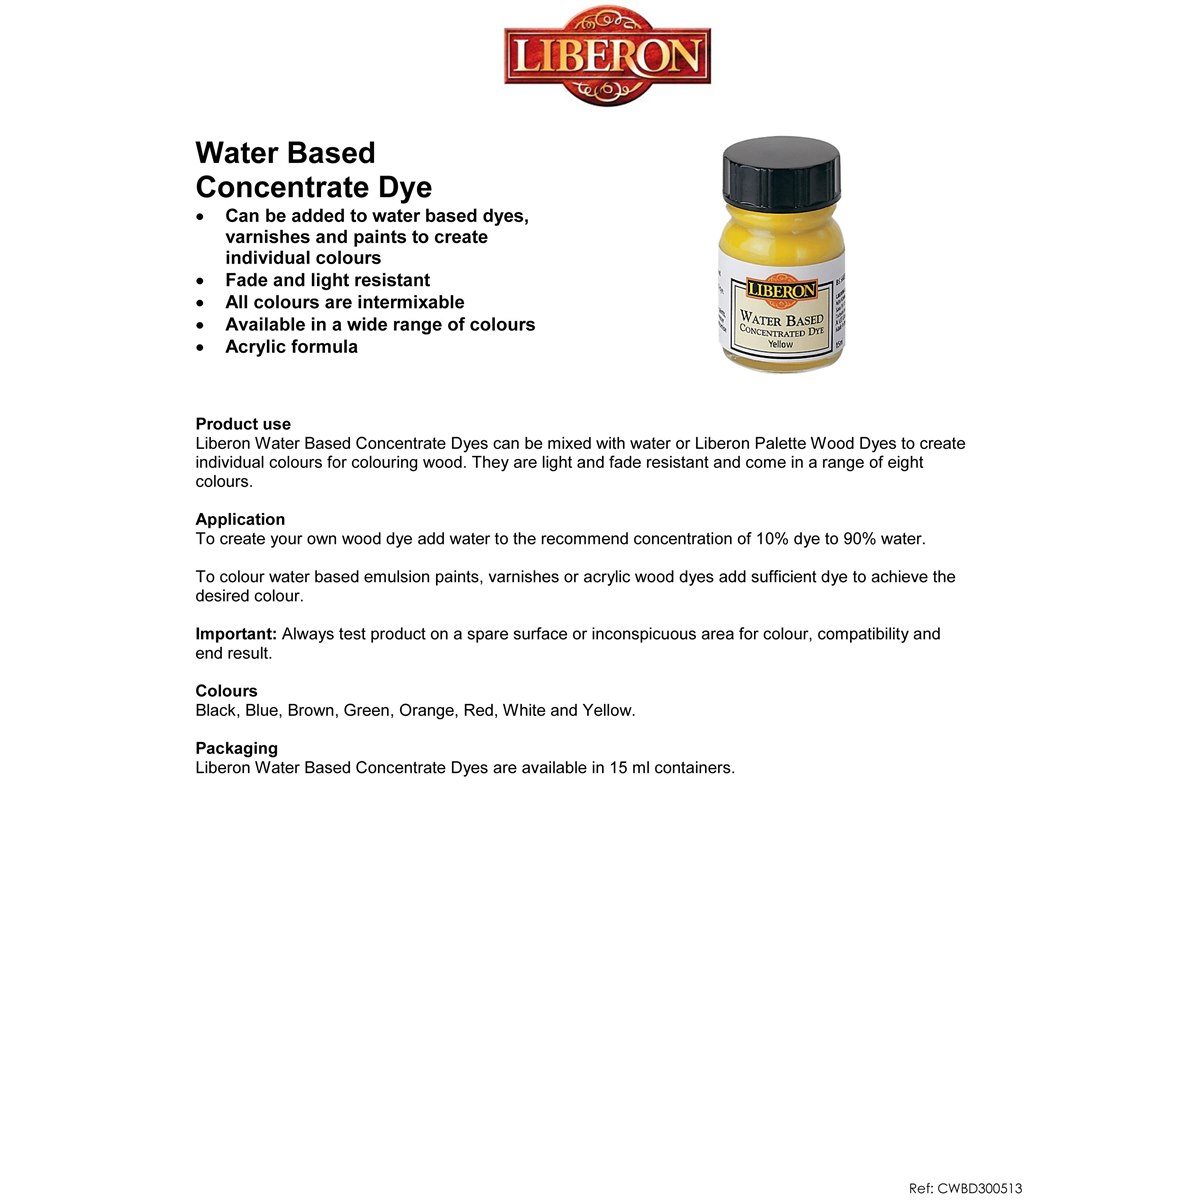 Liberon Water Based Concentrated Dye usage instructions